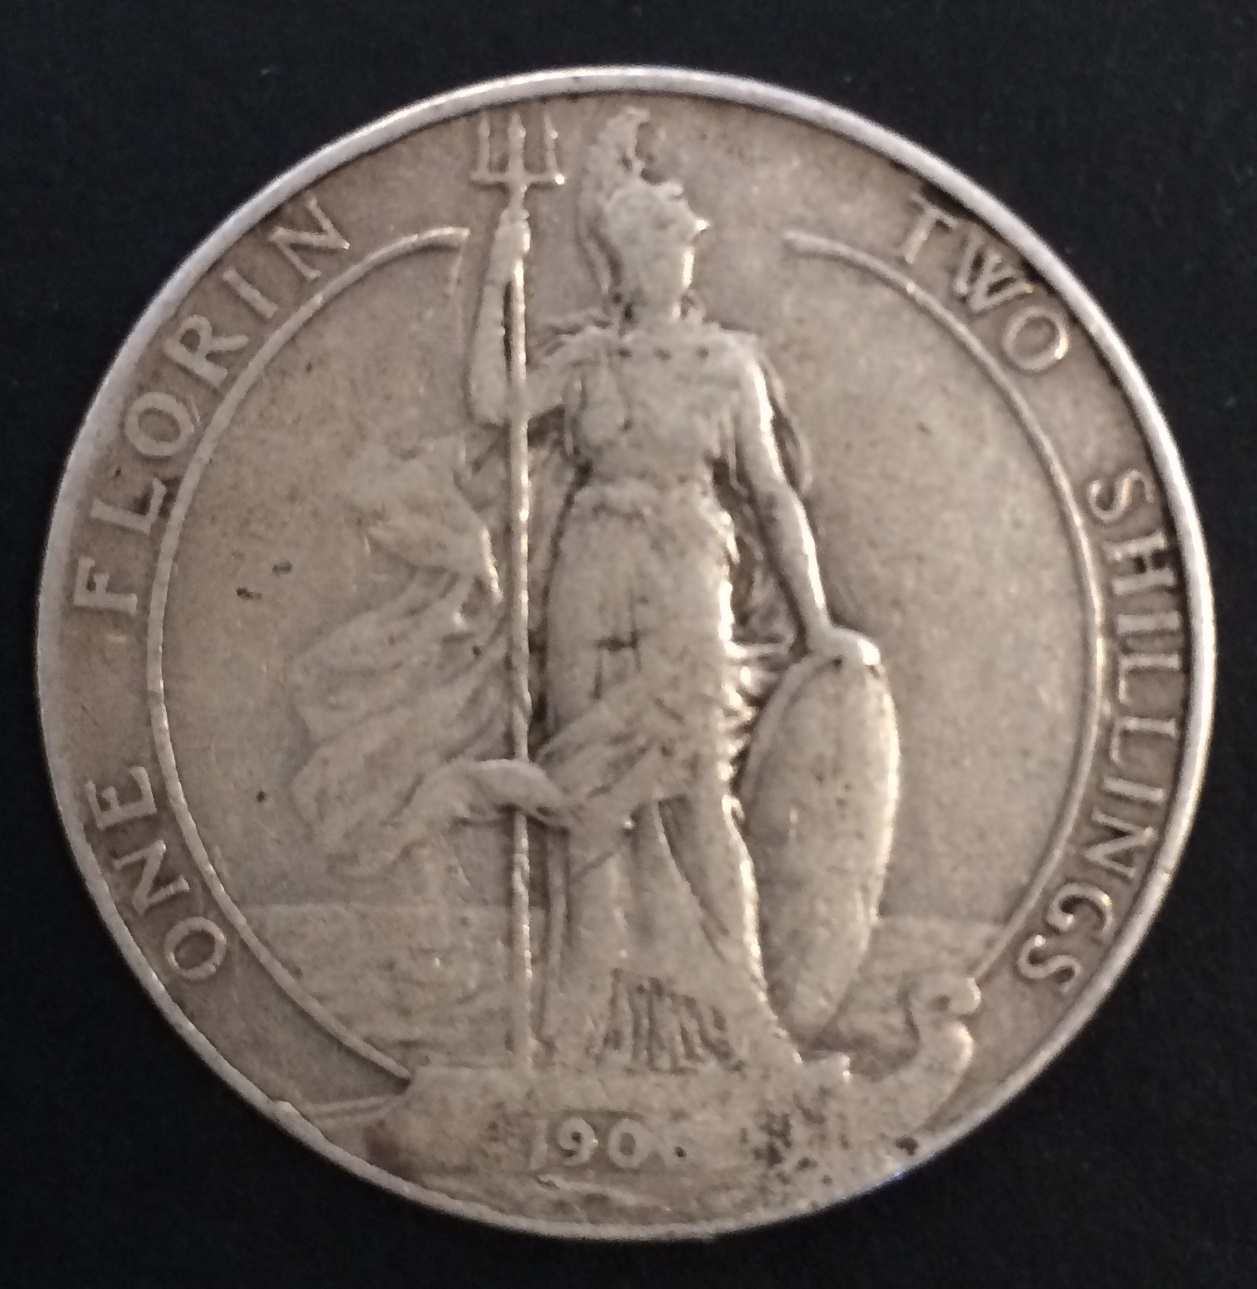 britannia florin - Announcing: The return of Britannia to our coins